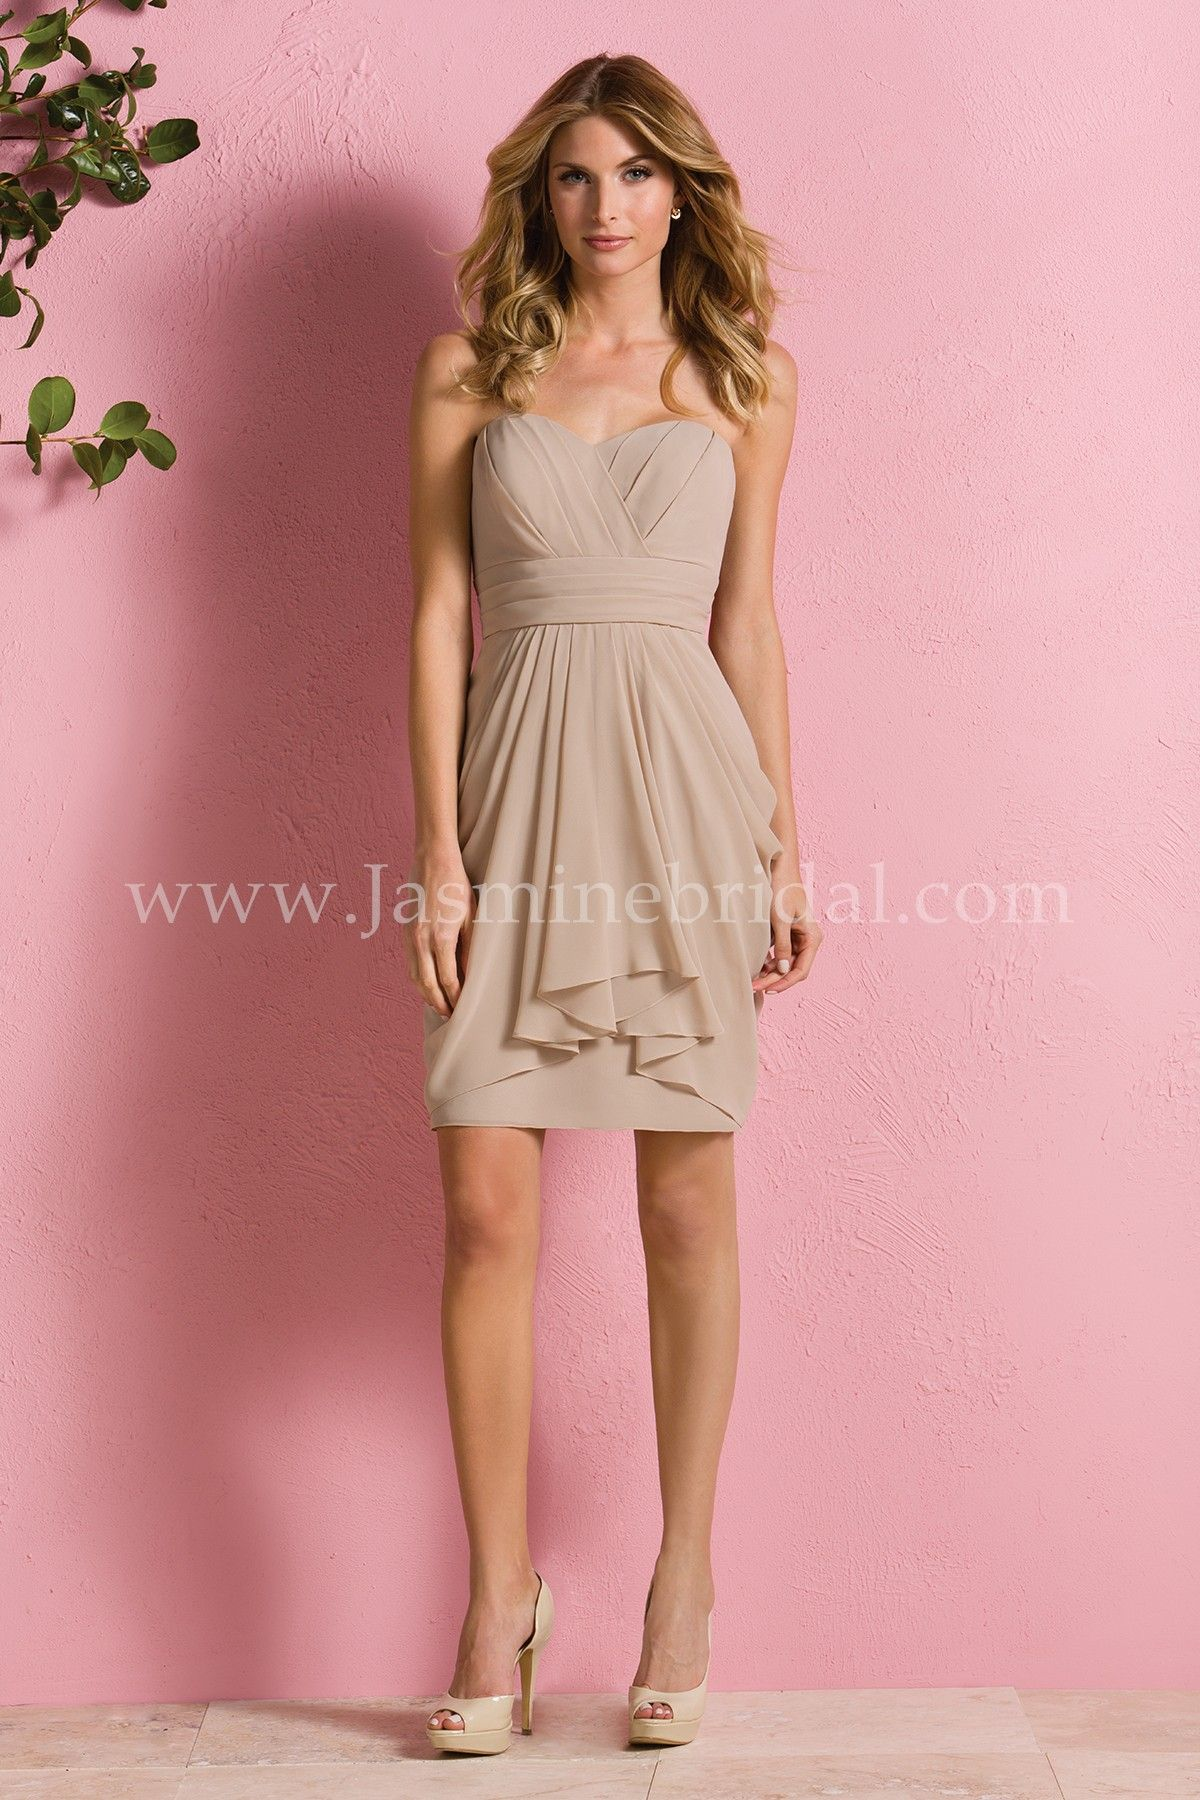 Unique mother of the bride dresses for caribbean wedding 2017 jasmine bridal bridesmaid dress b2 style b in latte ombrellifo Images